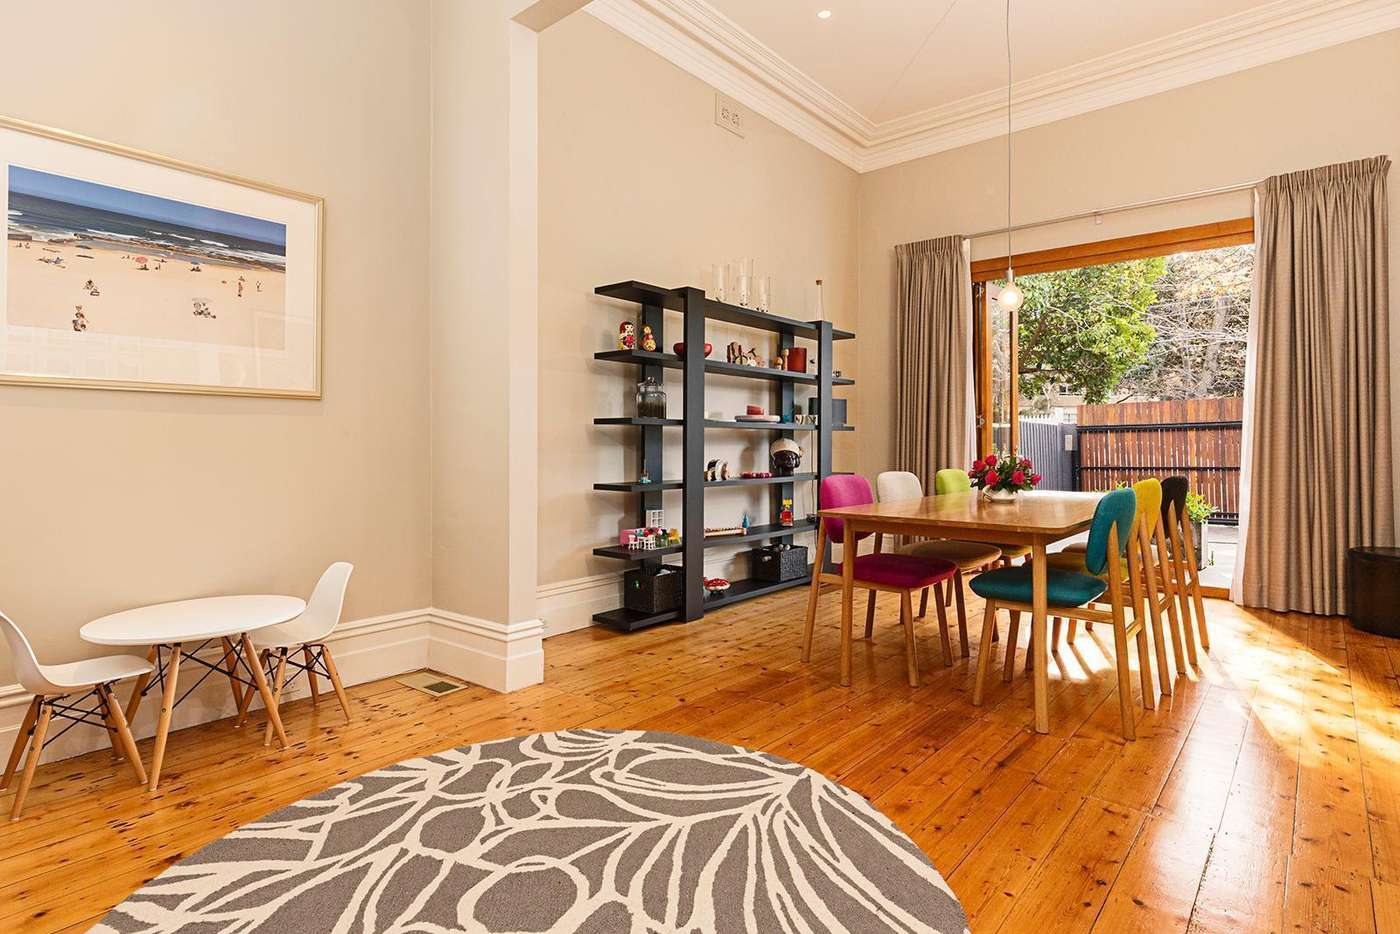 Fifth view of Homely house listing, 1/185 Inkerman Street, St Kilda VIC 3182